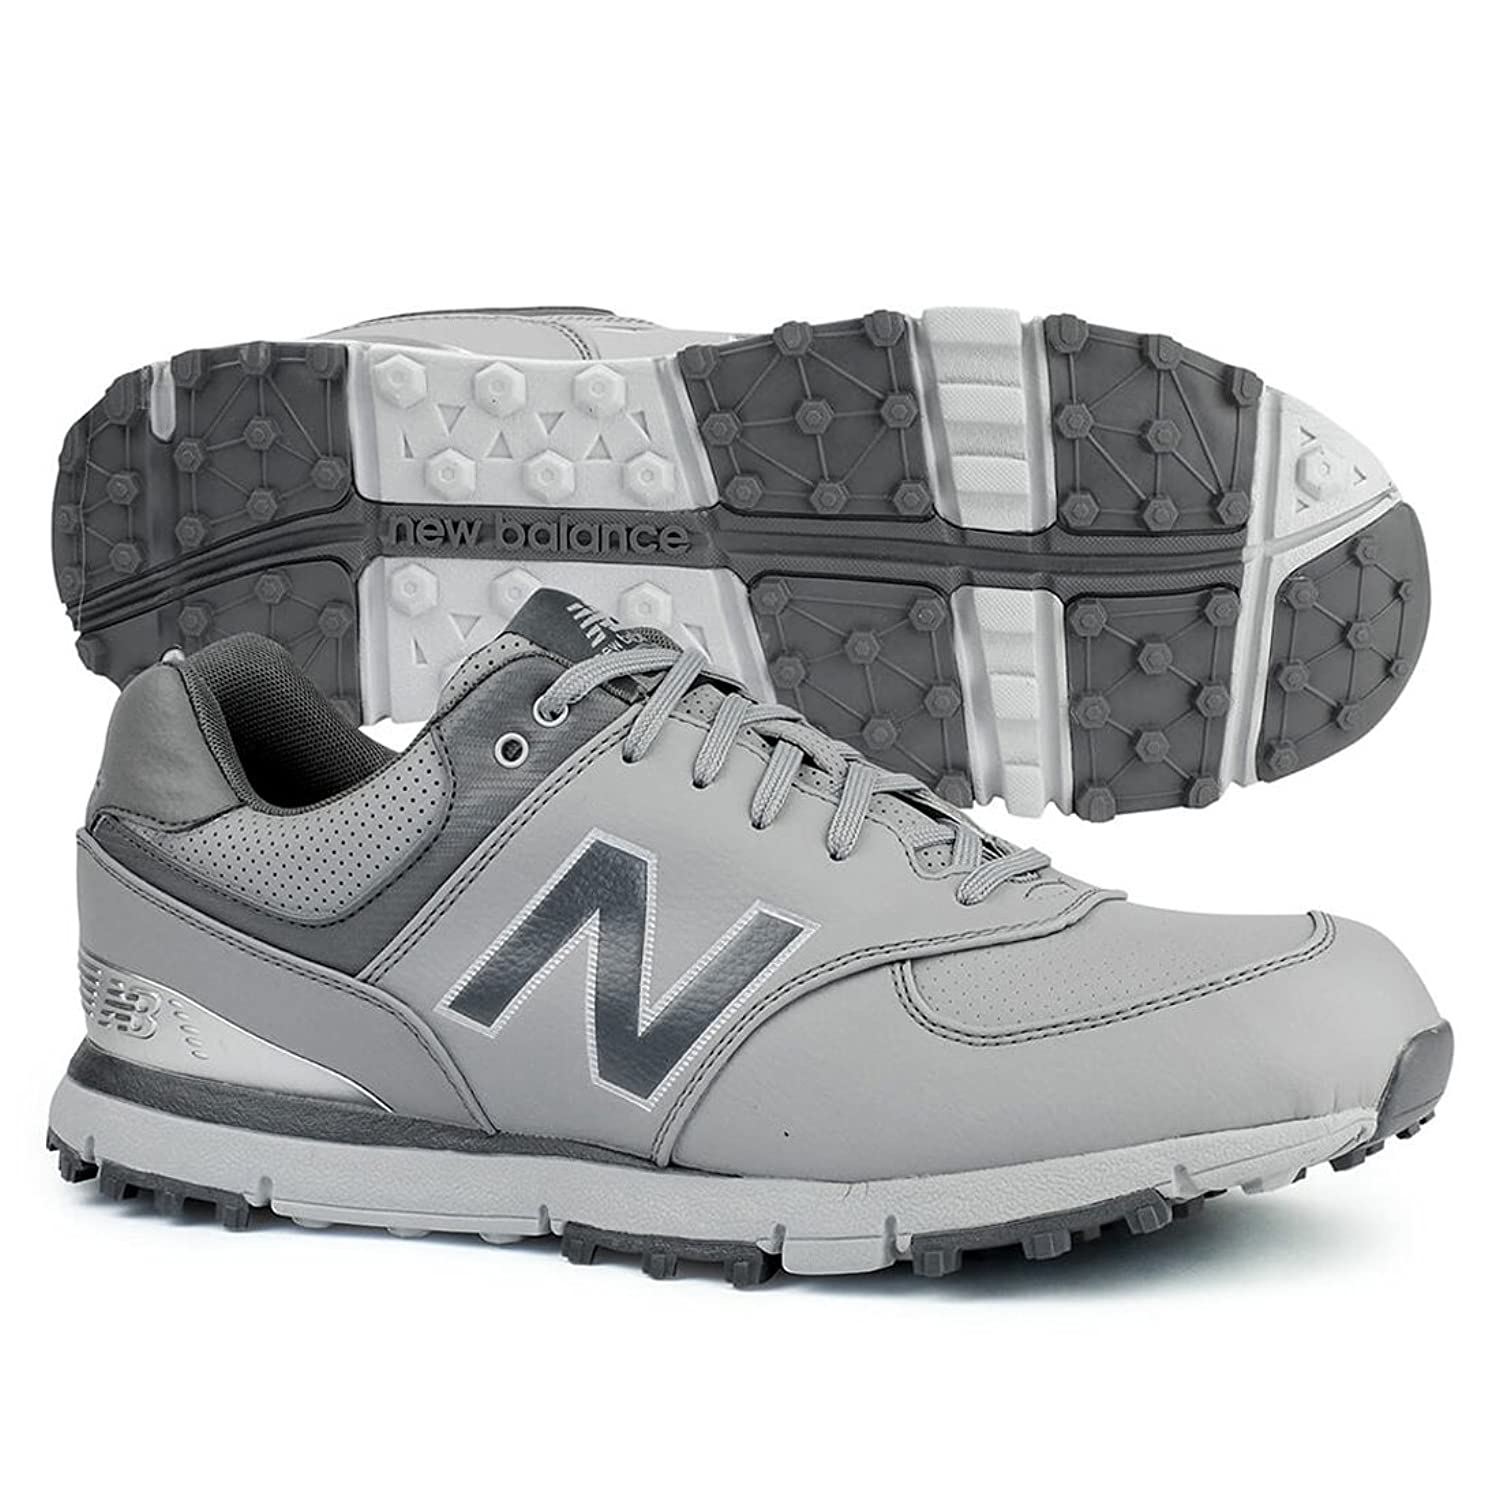 NEW BALANCE NB574 SL GOLF SHOES NBG574GRS ゴルフシューズ [並行輸入品] B0776VTW4M 25.0cm(MENS 7.0(D))